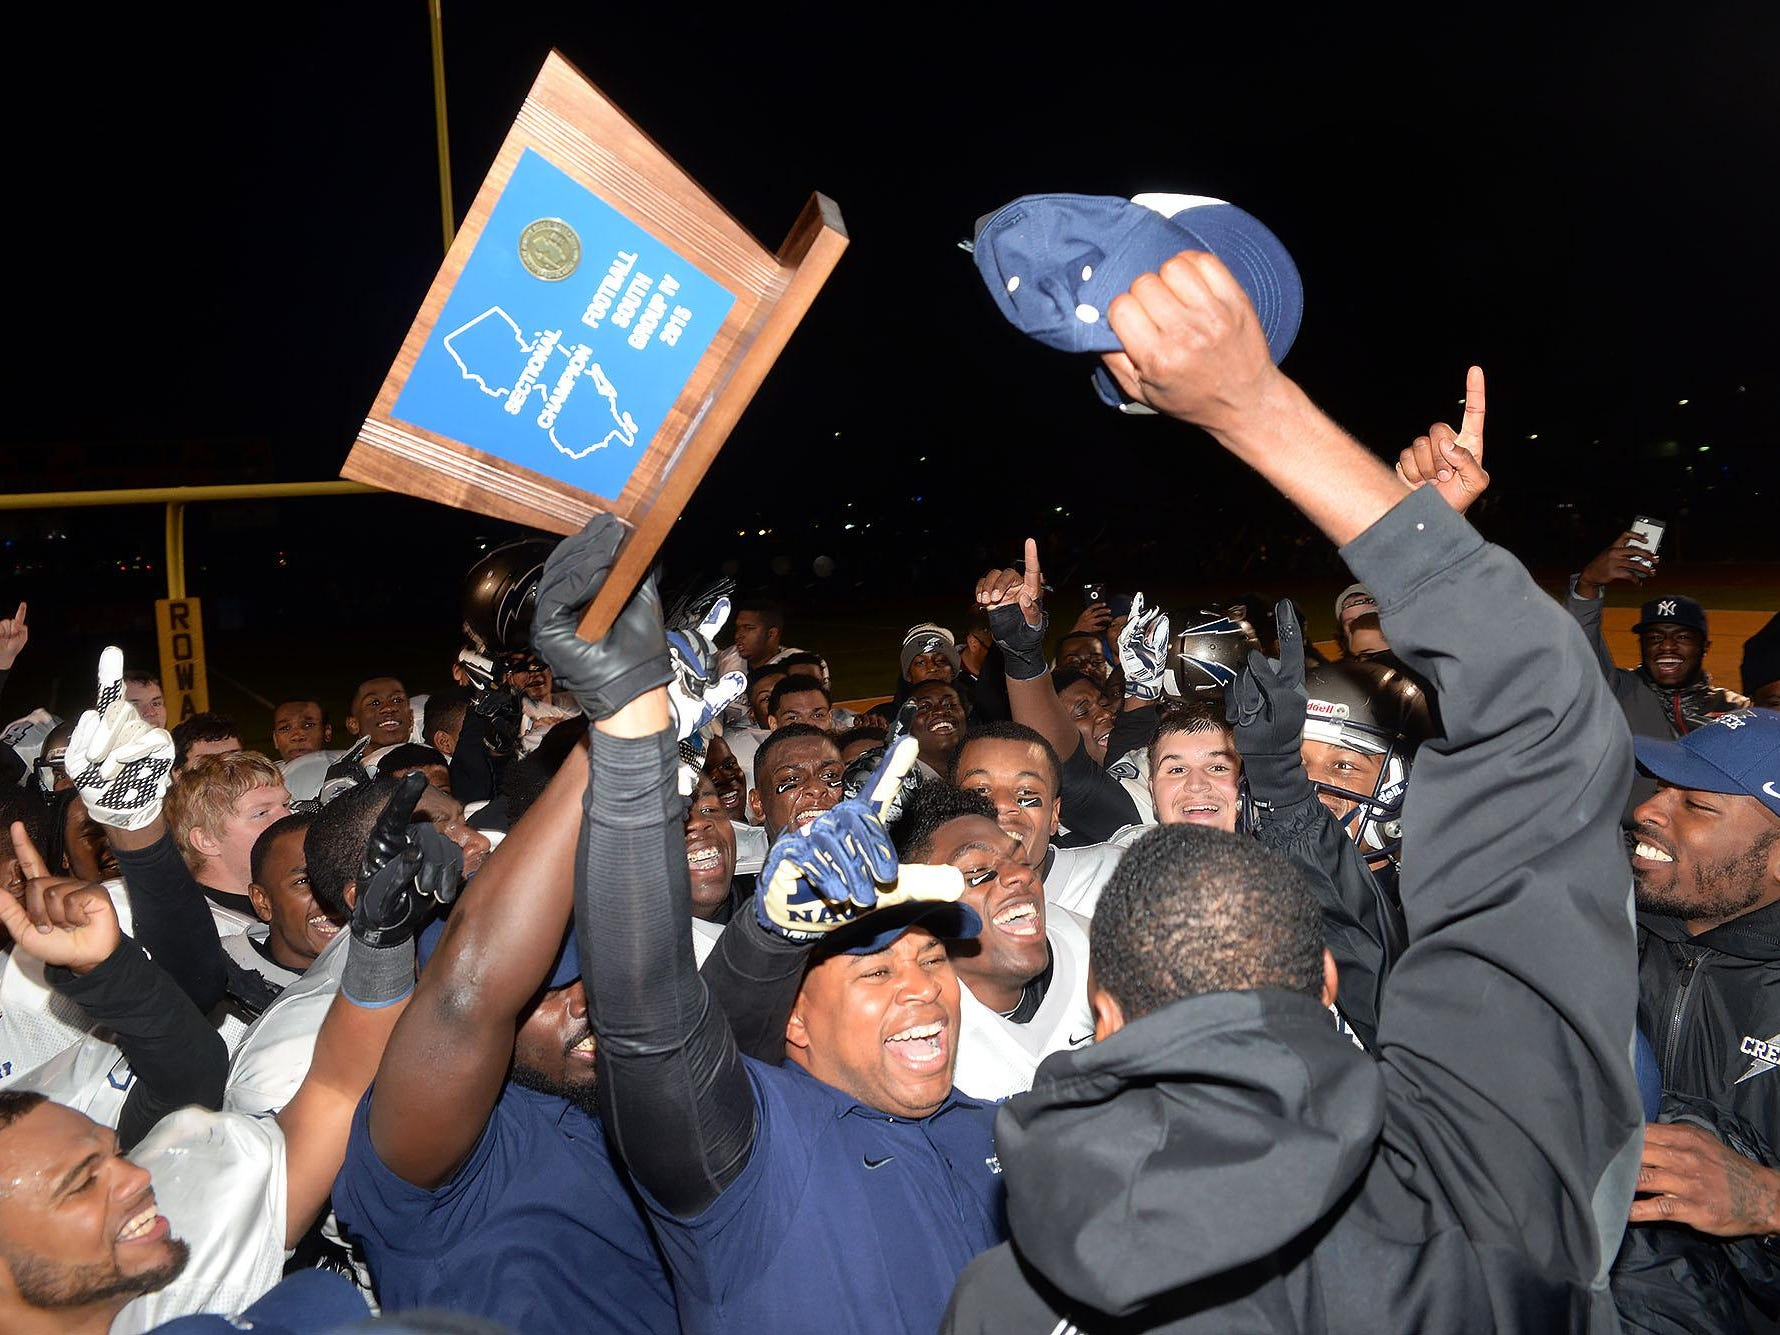 Timber Creek coach Rob Hinson (holding trophy) celebrates with his Chargers after their 28-24 win over Shawnee in the South Jersey Group 4 final on Sunday at Rowan.